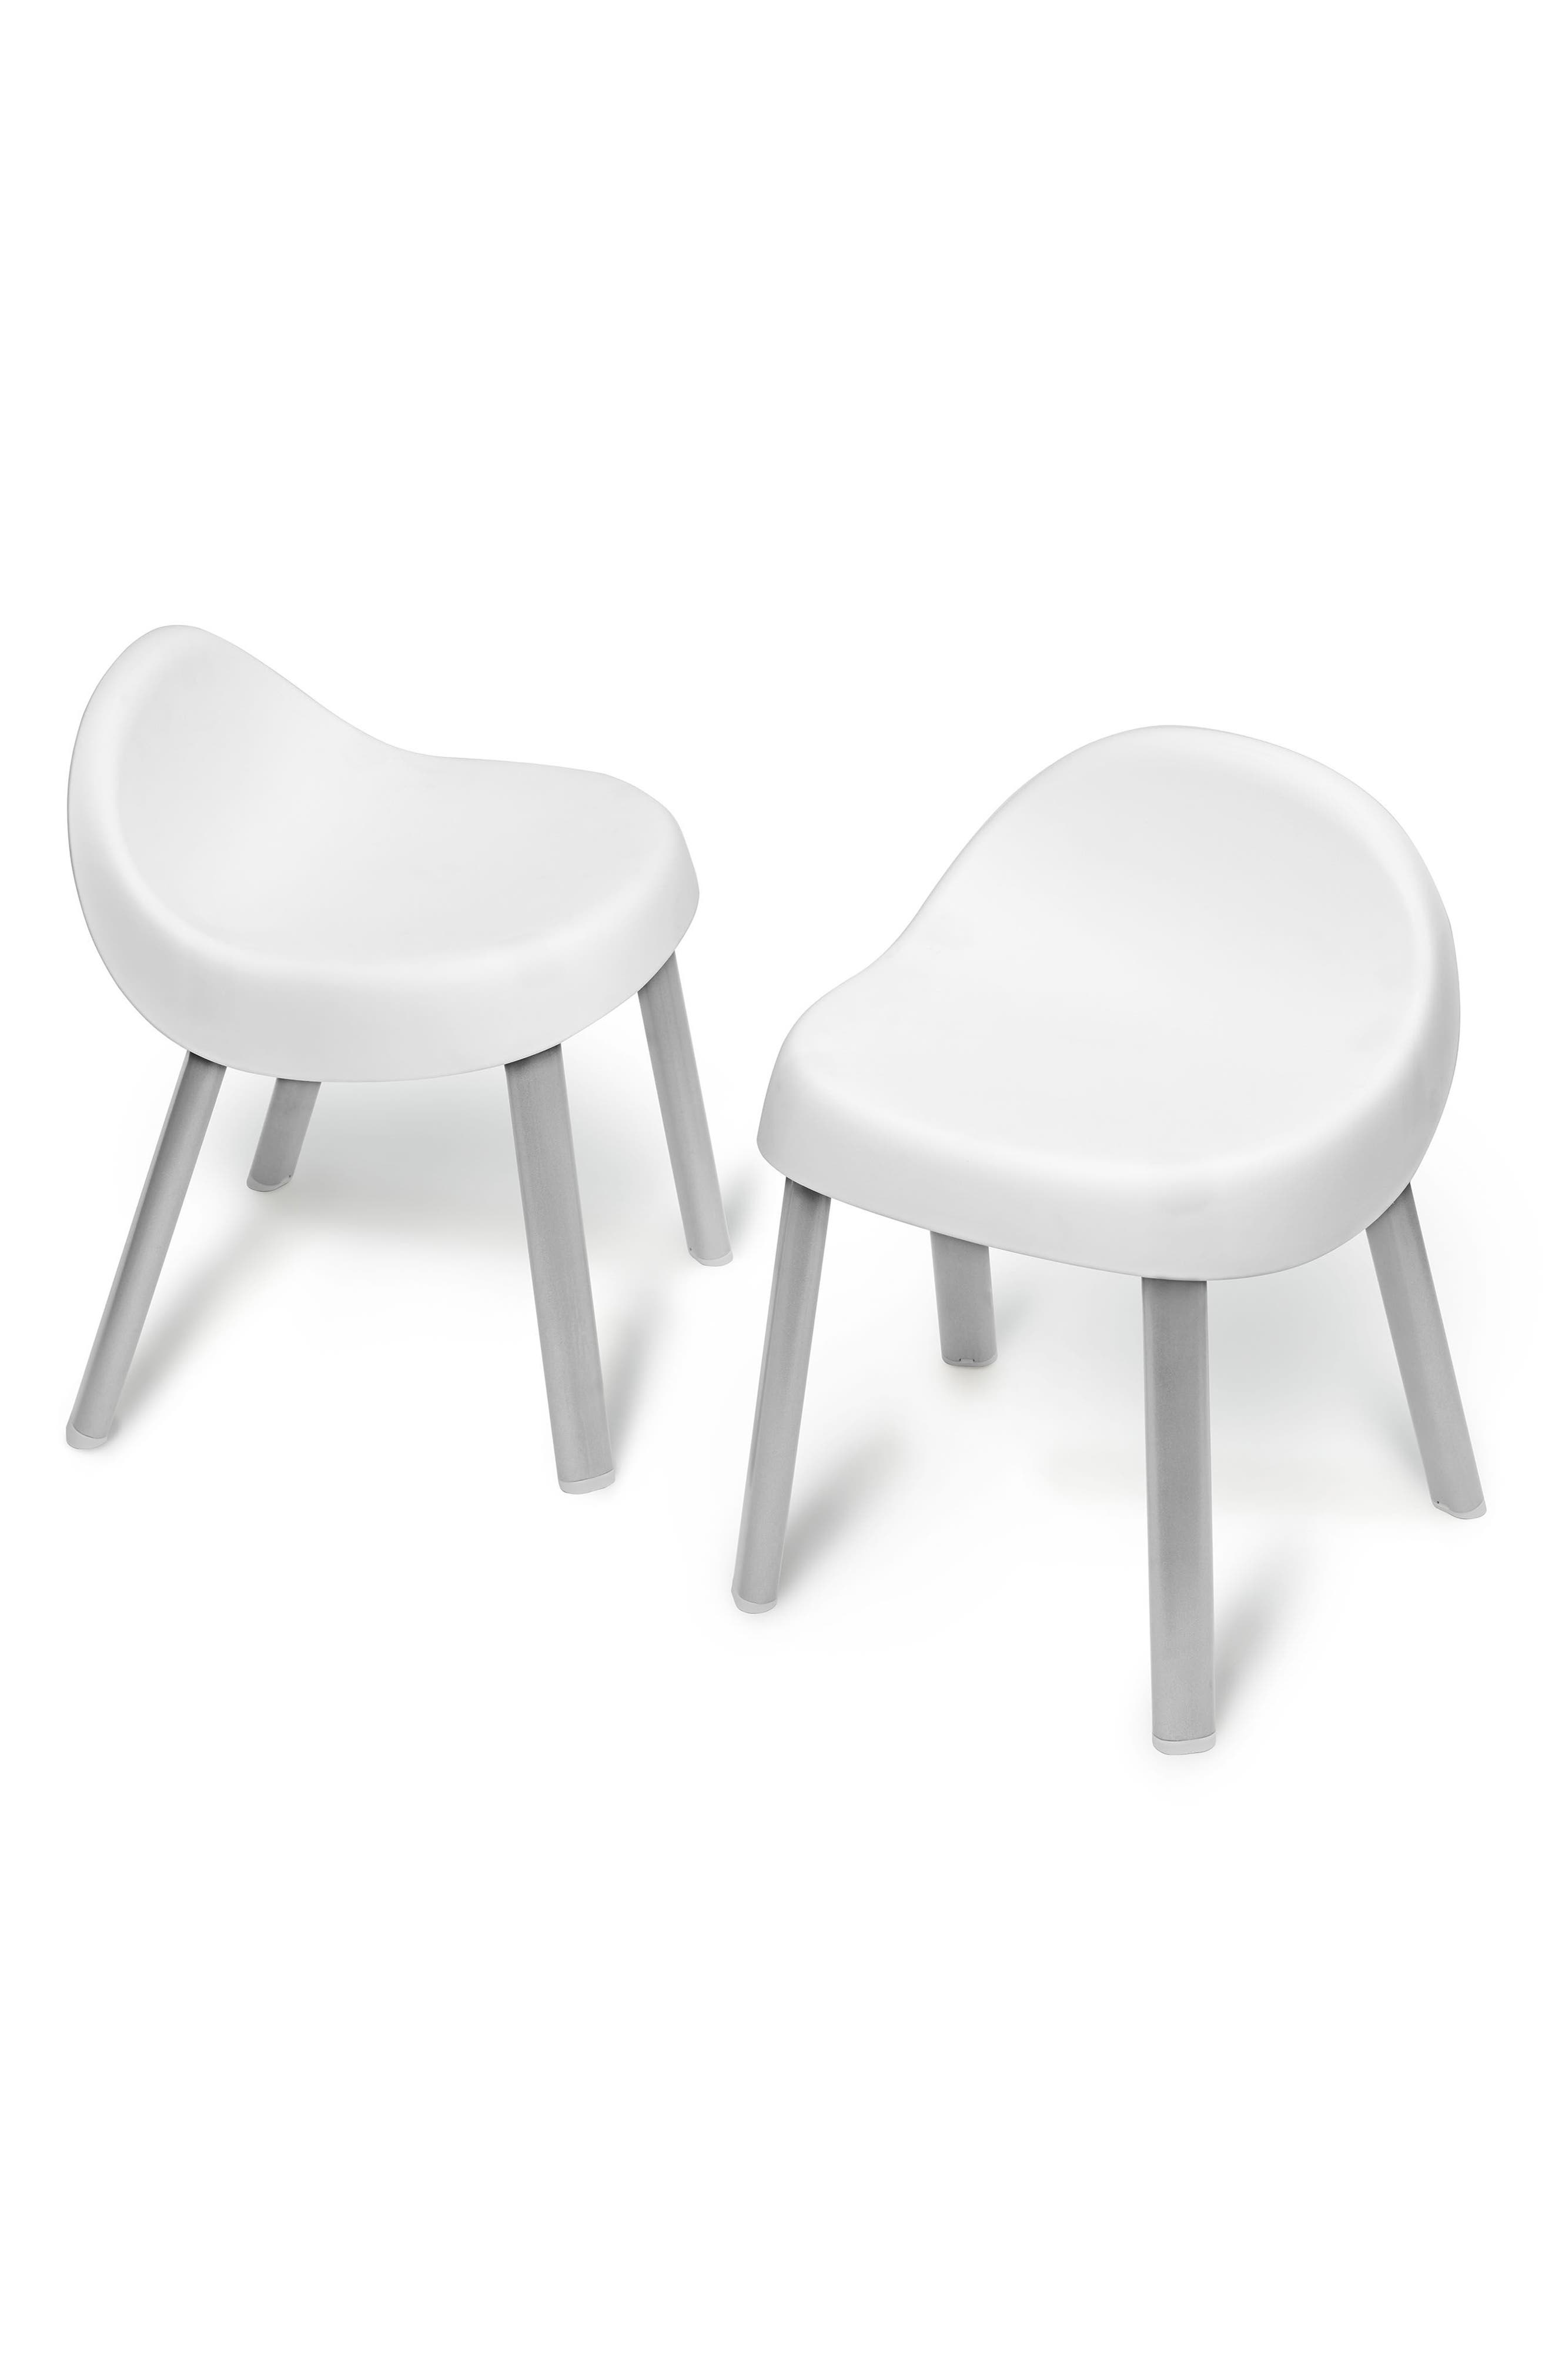 Explore & More Kids' Chairs,                         Main,                         color, WHITE